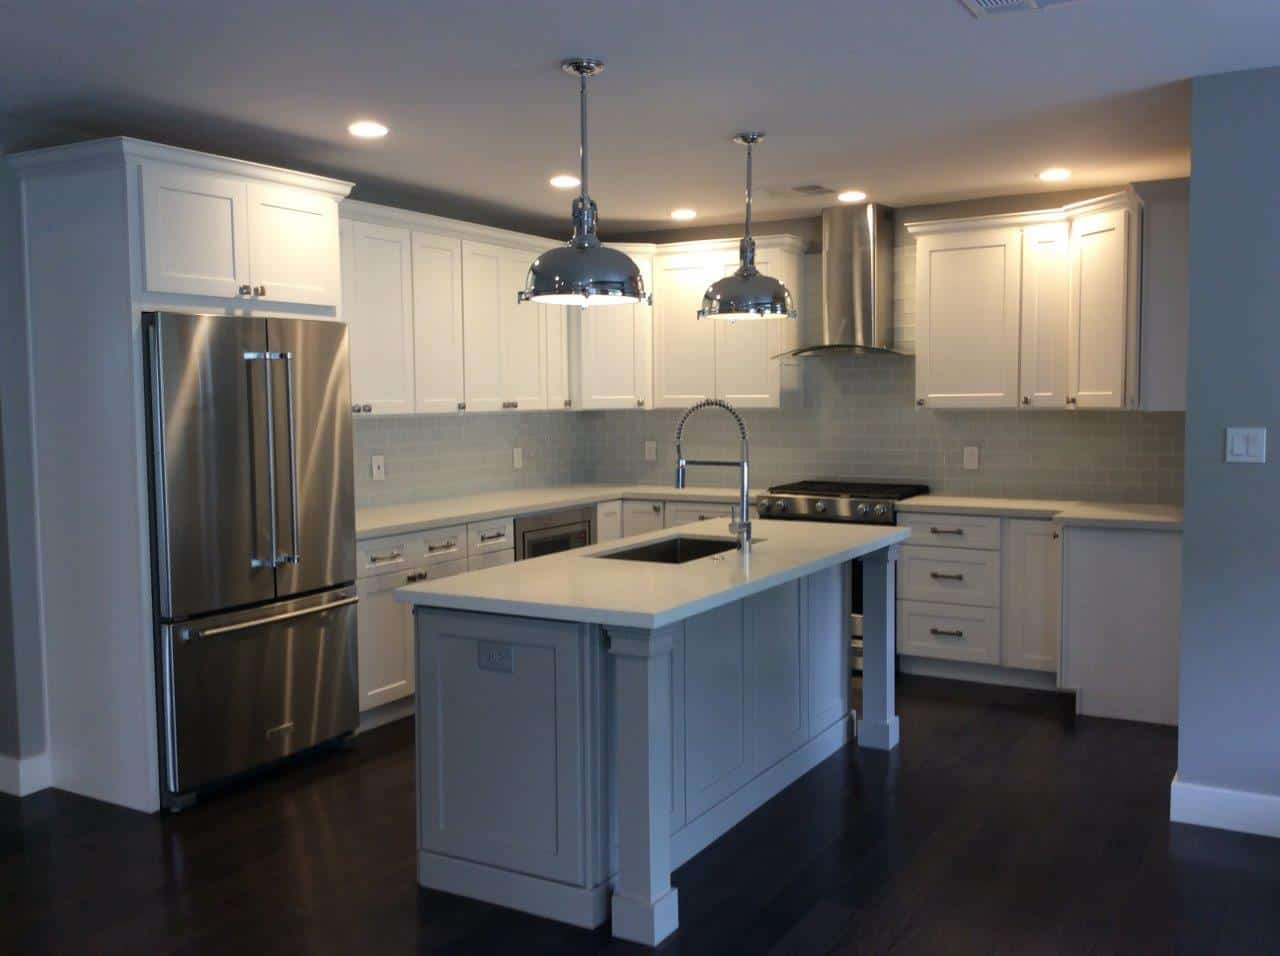 Newly painted kitchen with silver appliances